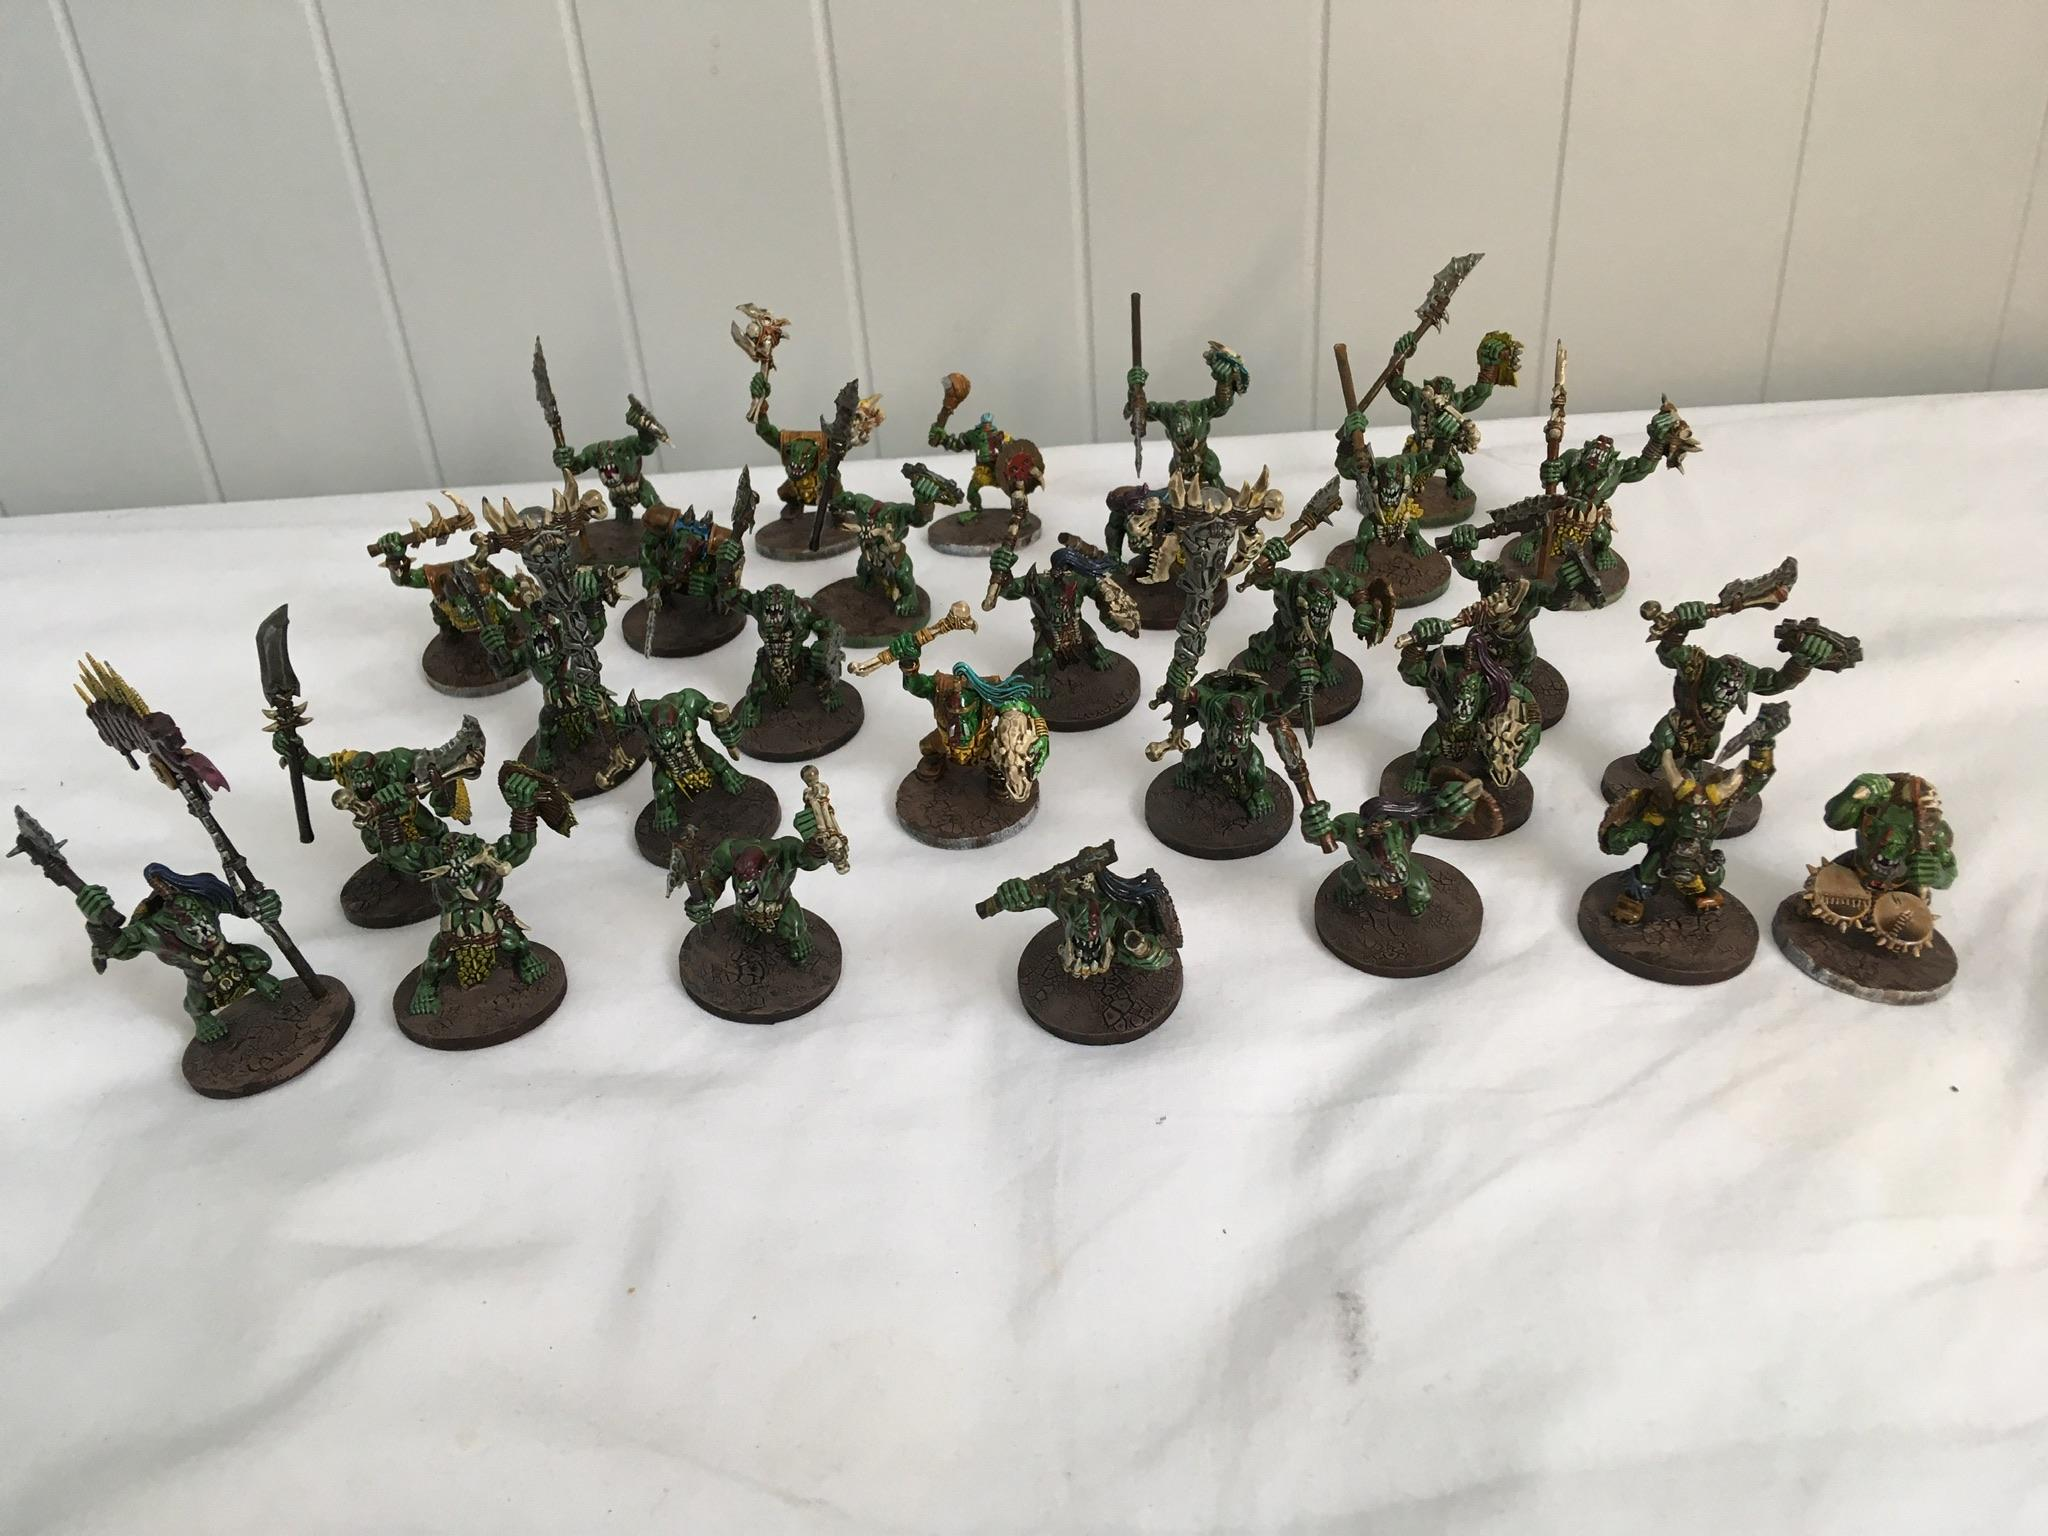 Age Of Sigmar, Barbarians, Batch Painting, Bone, Bonesplitters, Greenskinz, Order Of Destruction, Orruk, Quickshade, Savage Orc, Stone, Waaagh, Warhammer Fantasy